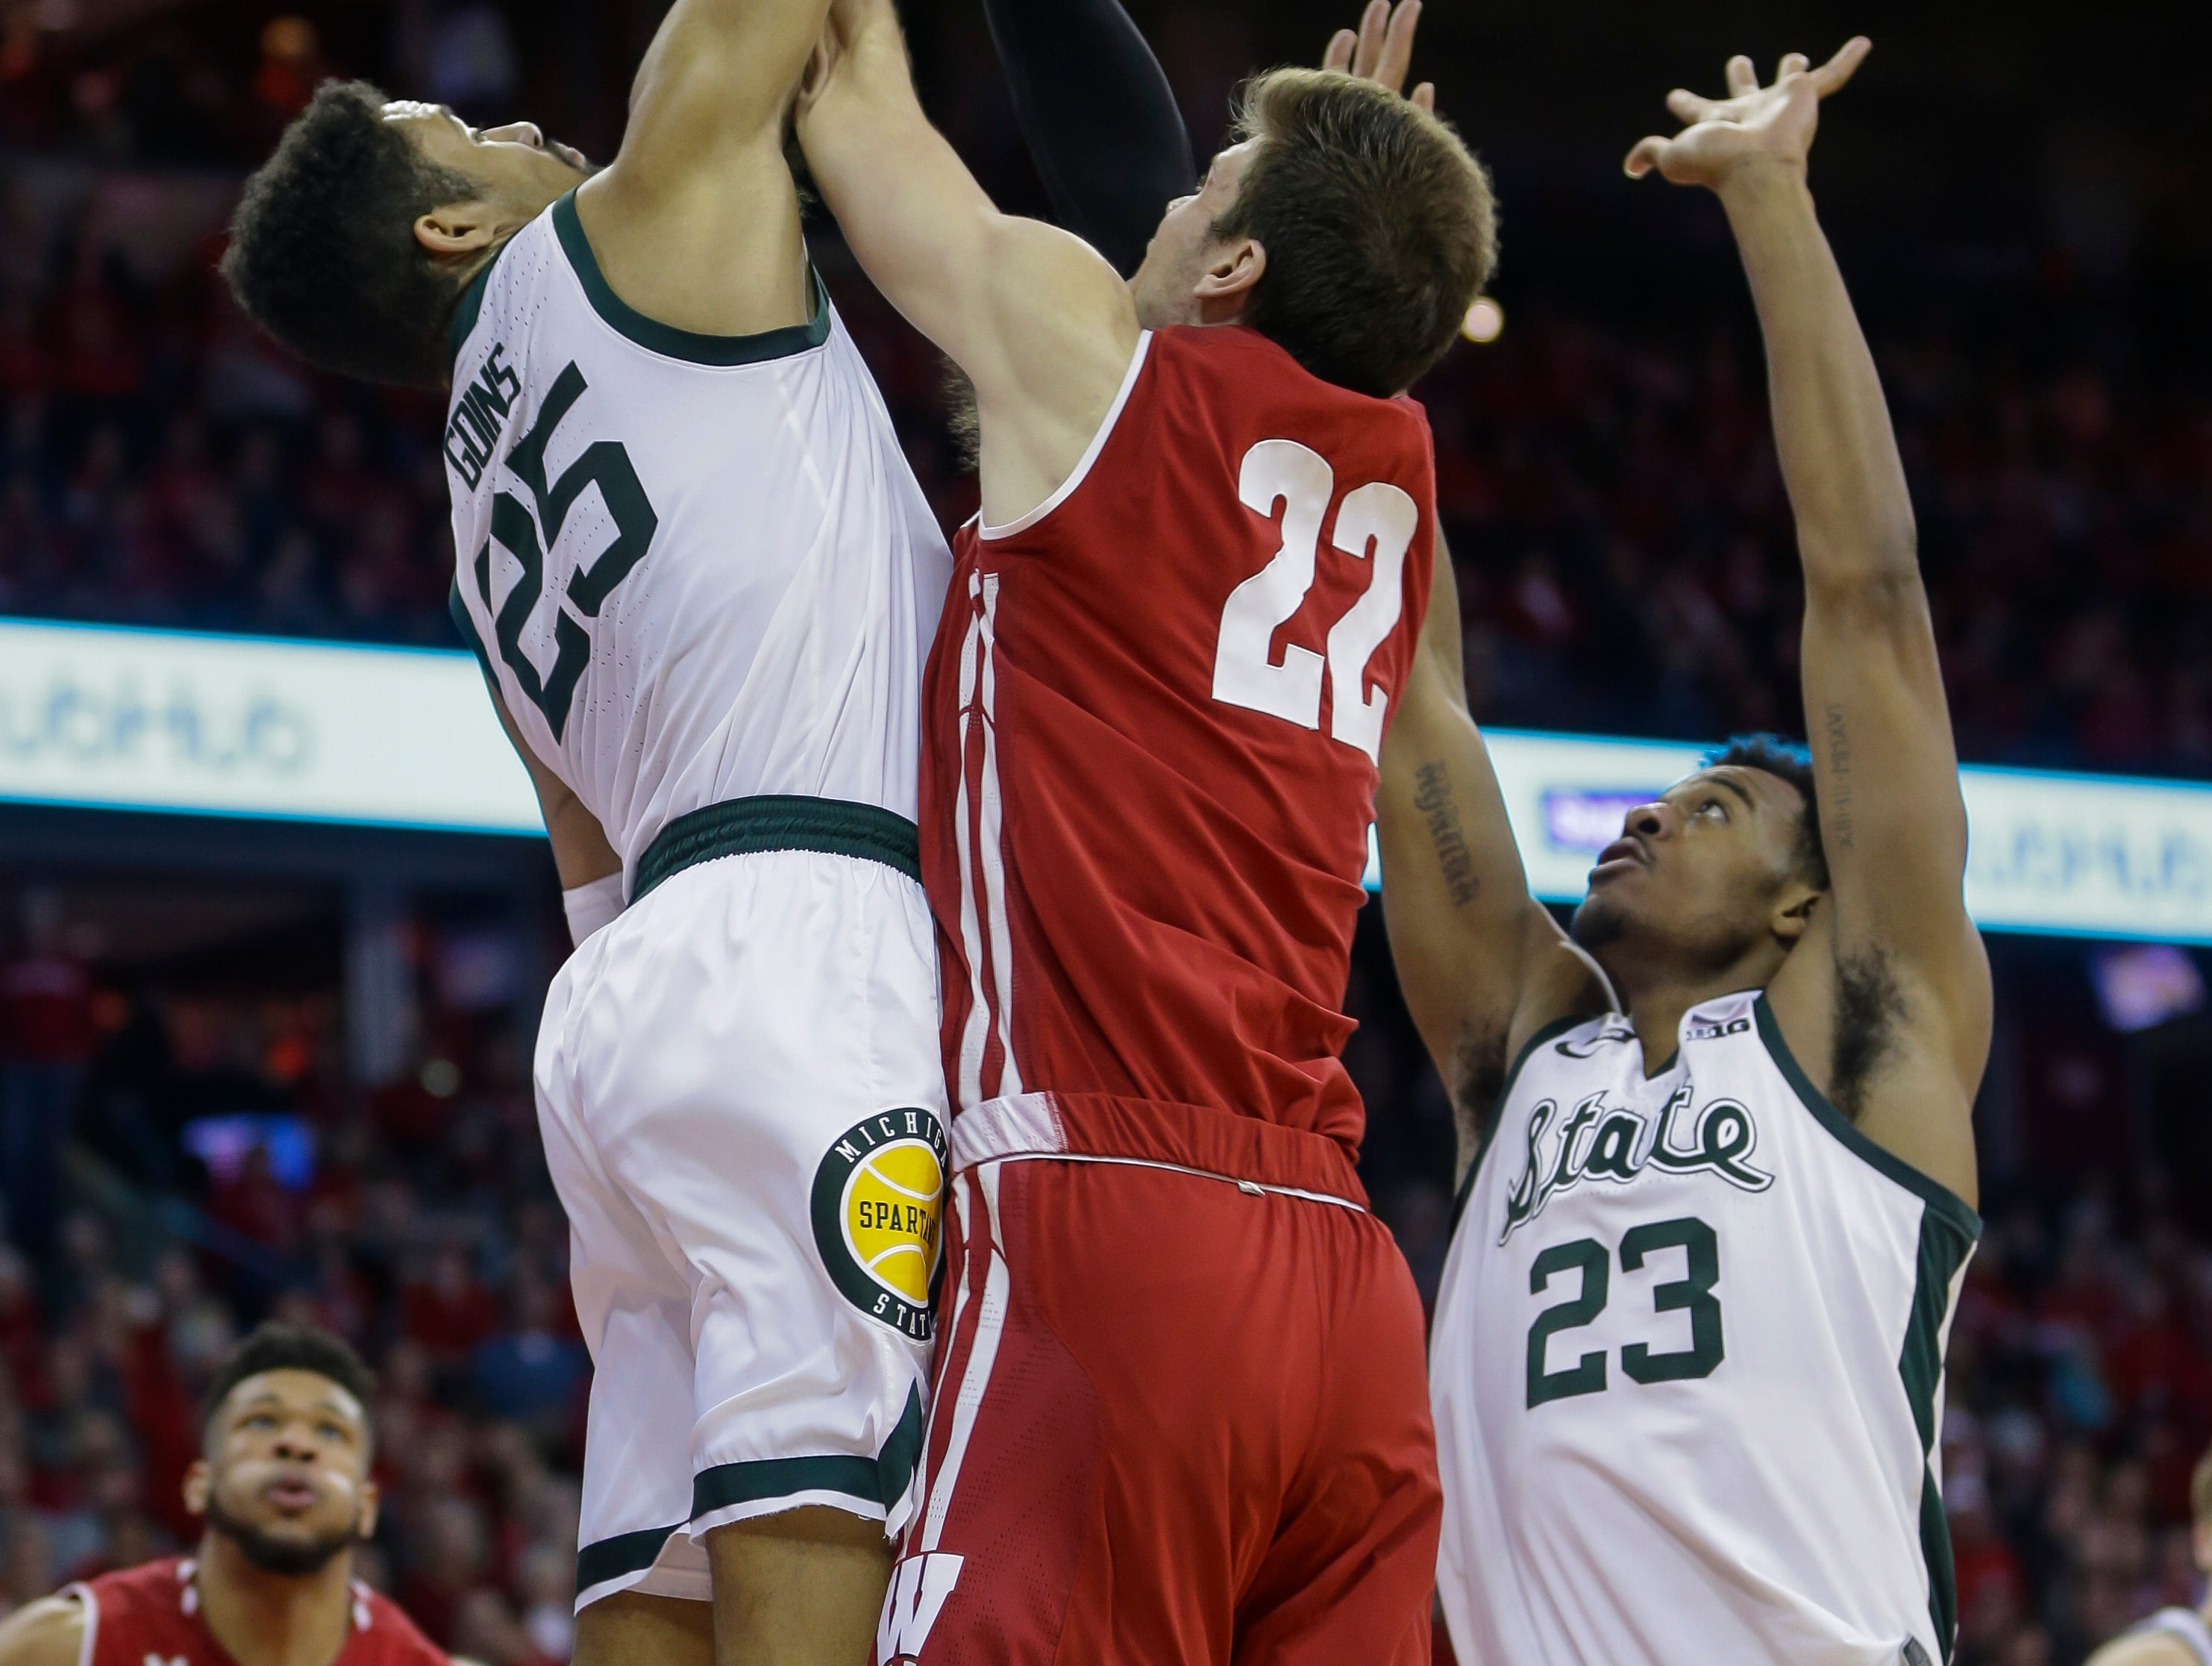 Michigan States's Kenny Goins (25) blocks a shot by Wisconsin's Ethan Happ (22) during the second half of an NCAA college basketball game Tuesday, Feb. 12, 2019, in Madison, Wis. At right is Michigan States's Xavier Tillman.